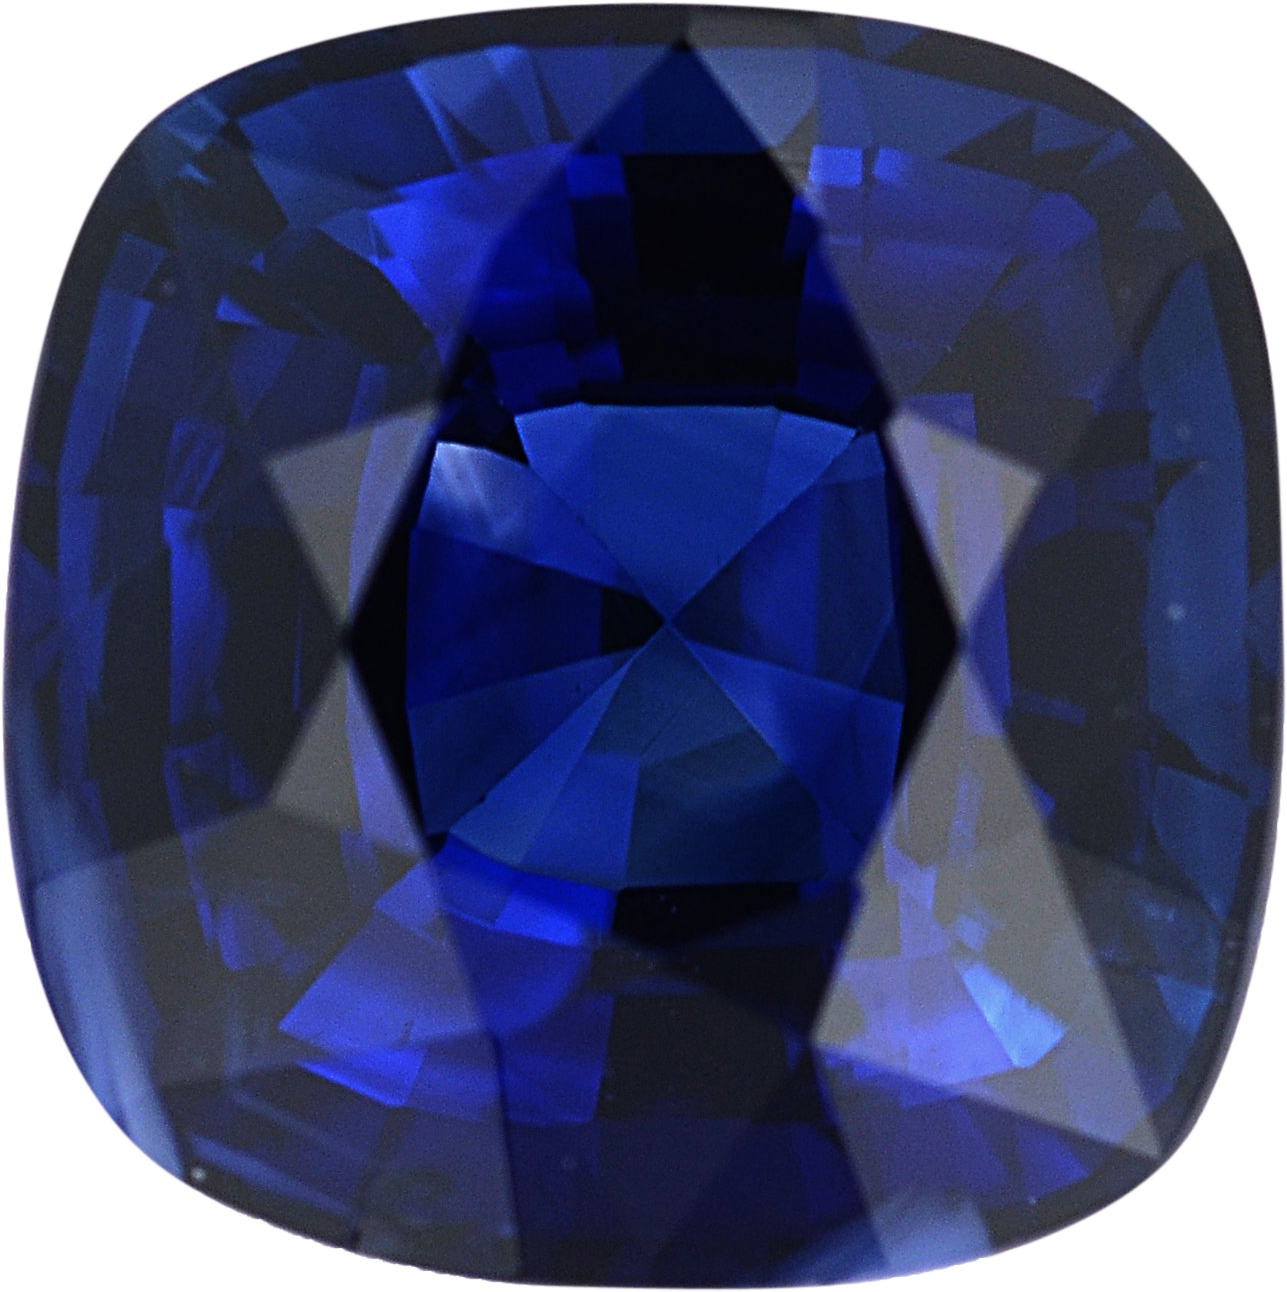 Nice Sapphire Loose Gem in Antique Square Cut, Vibrant Blue Violet, 6.16 x 6.12  mm, 1.35 Carats